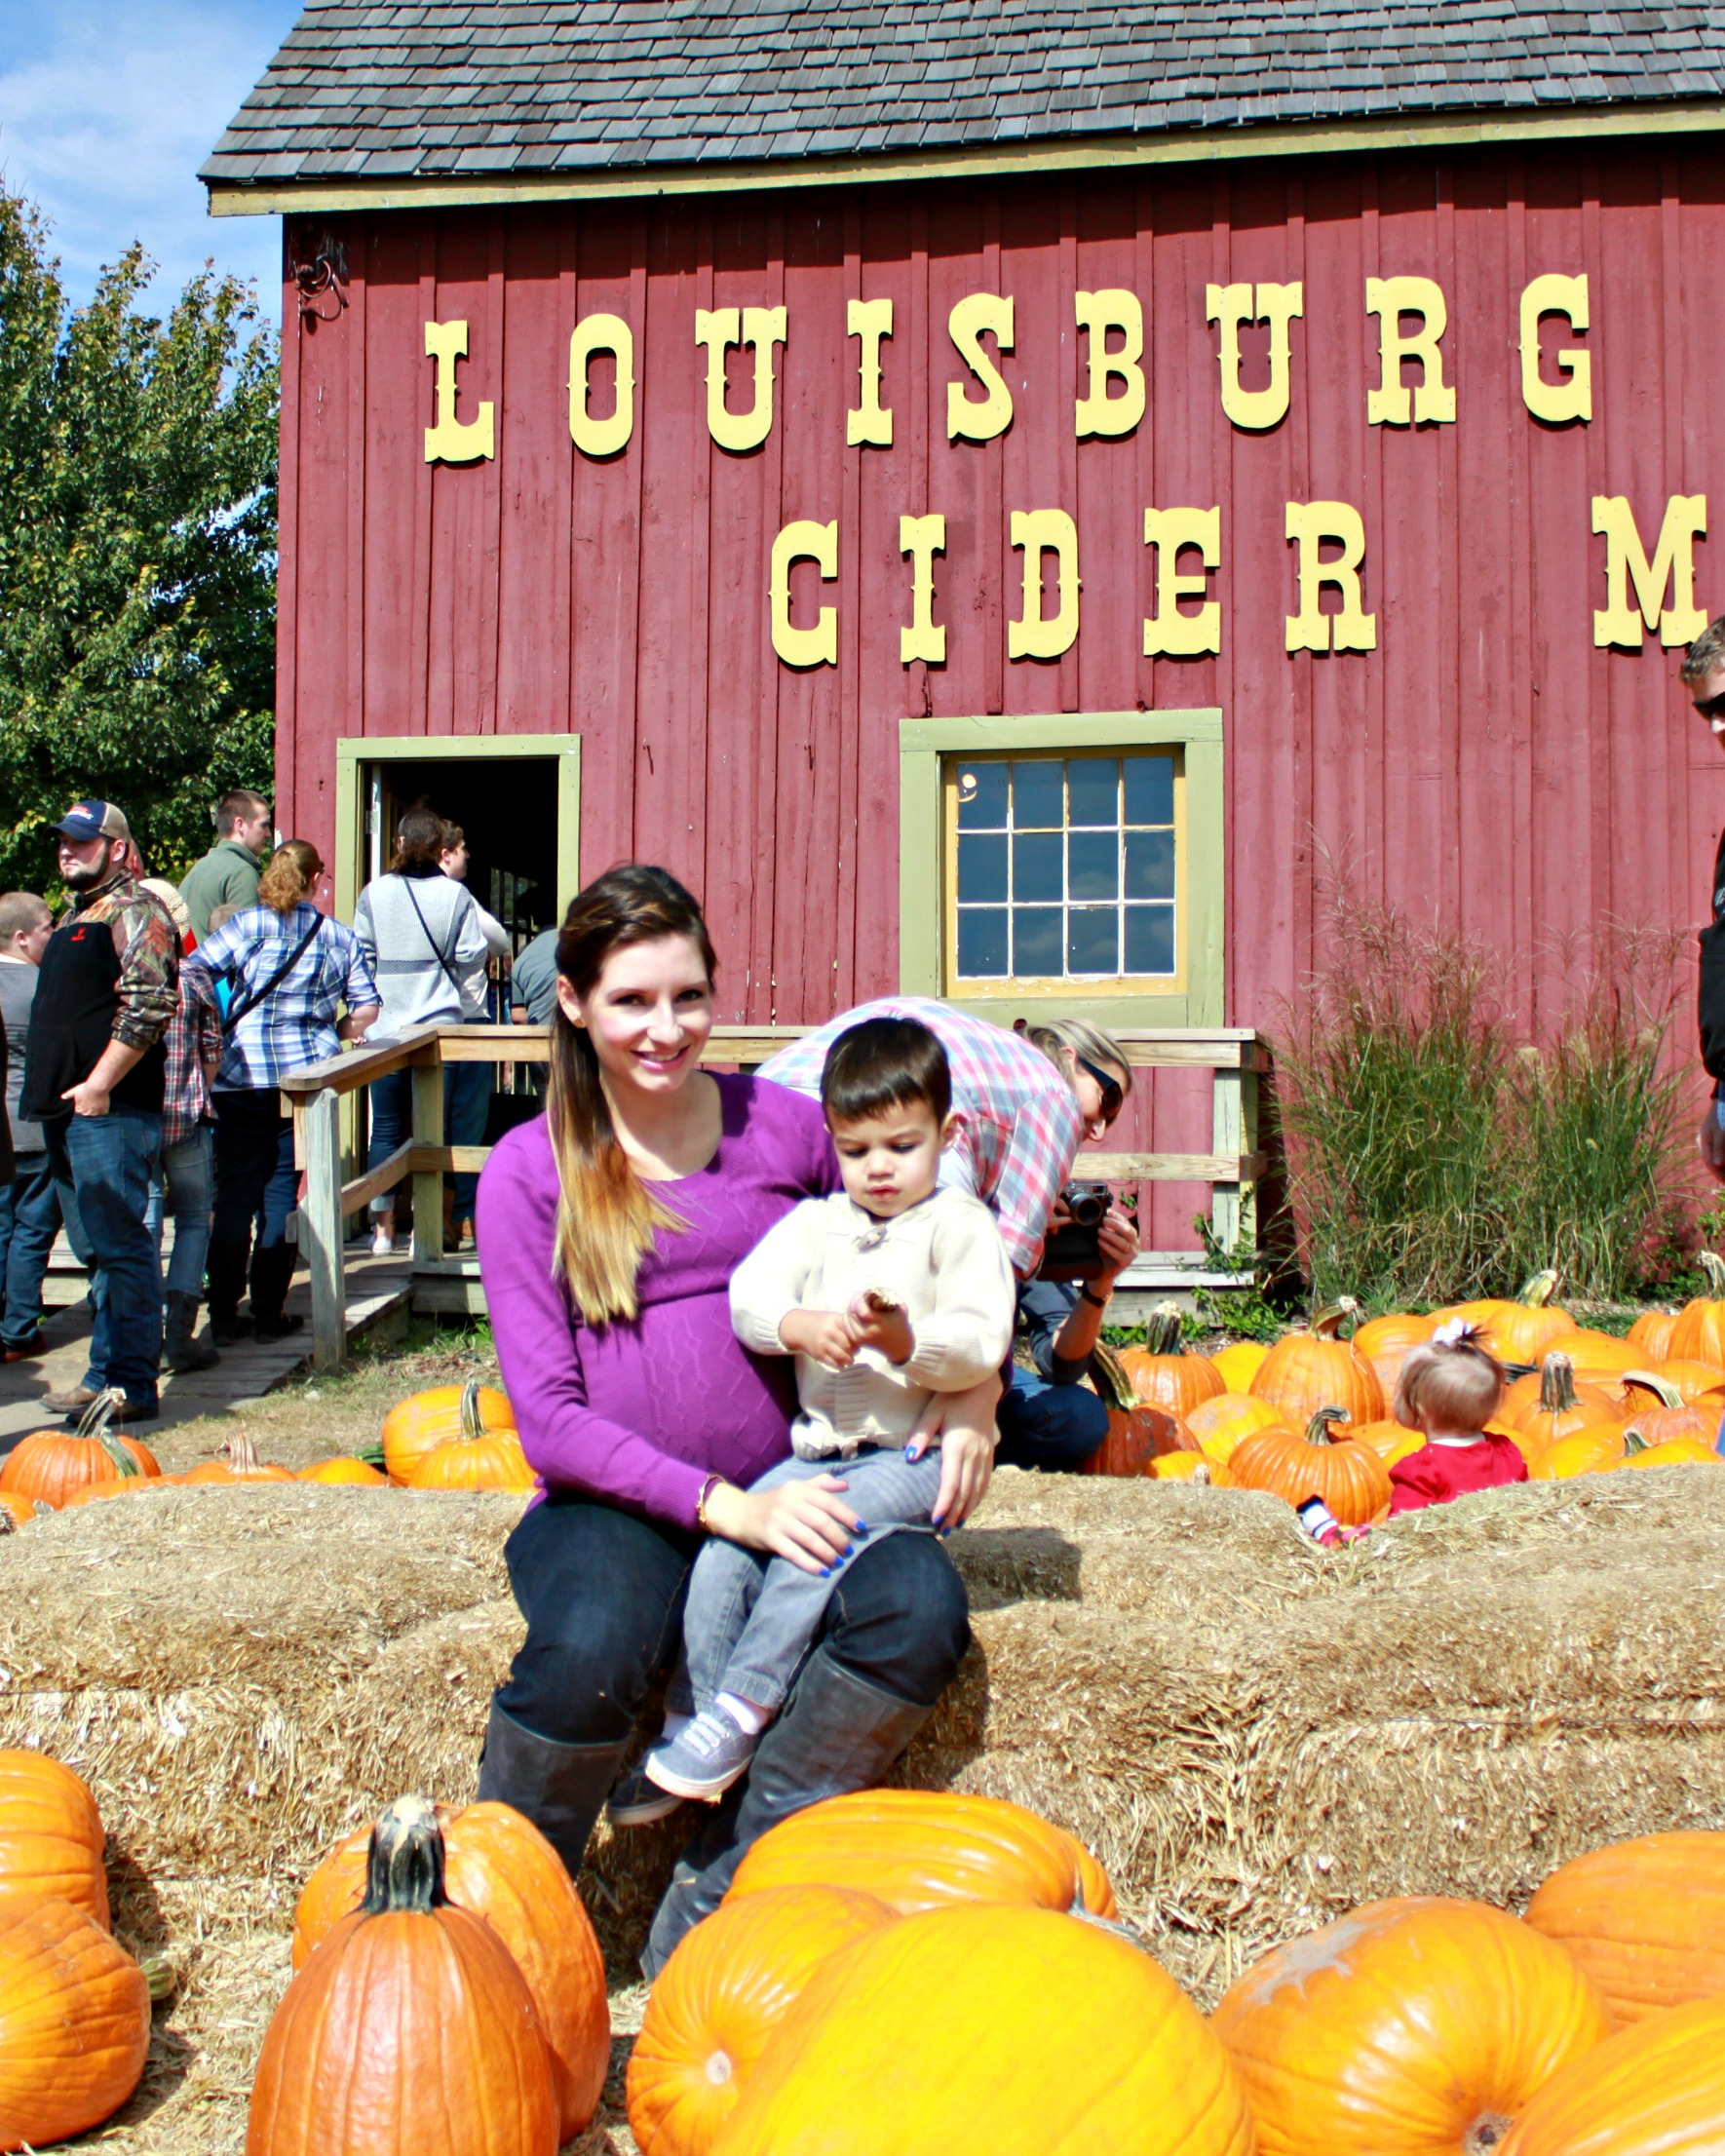 Louisburg Cider Mill with Mommy - {My Life Space Moments}